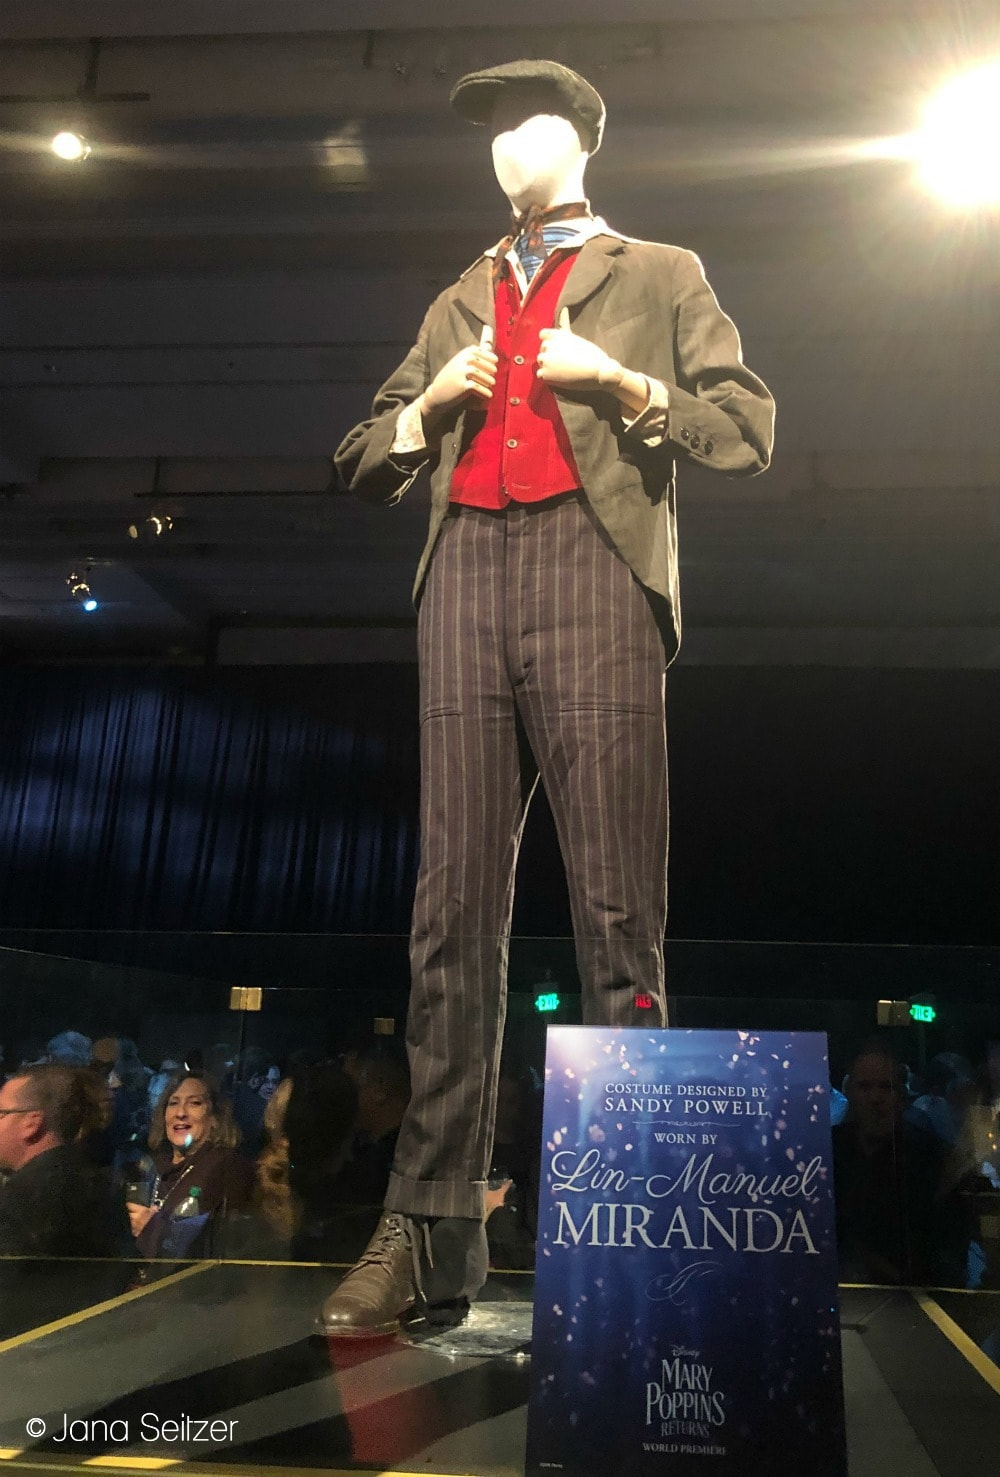 Mary Poppins Returns Red Carpet Premiere Jack's costume